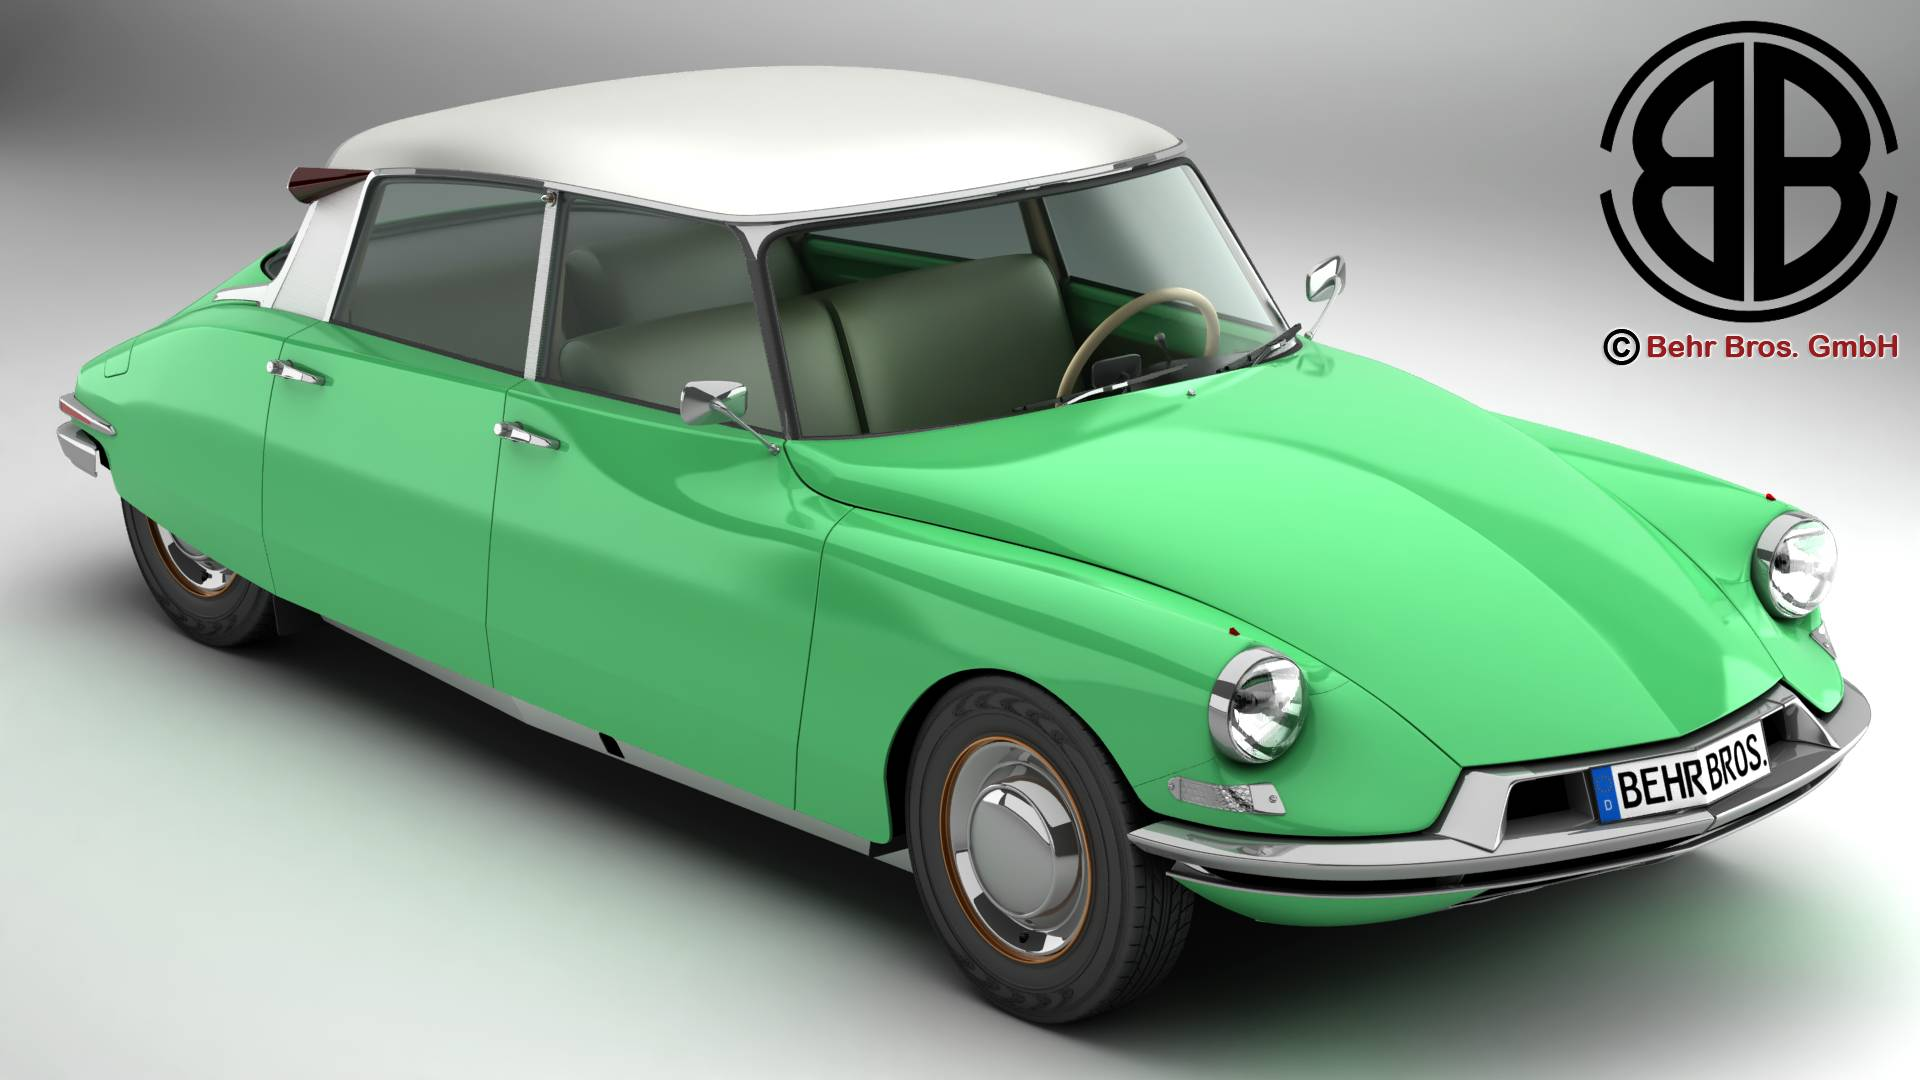 citroen ds 19 3d model 3ds max fbx c4d le do thoil 269270